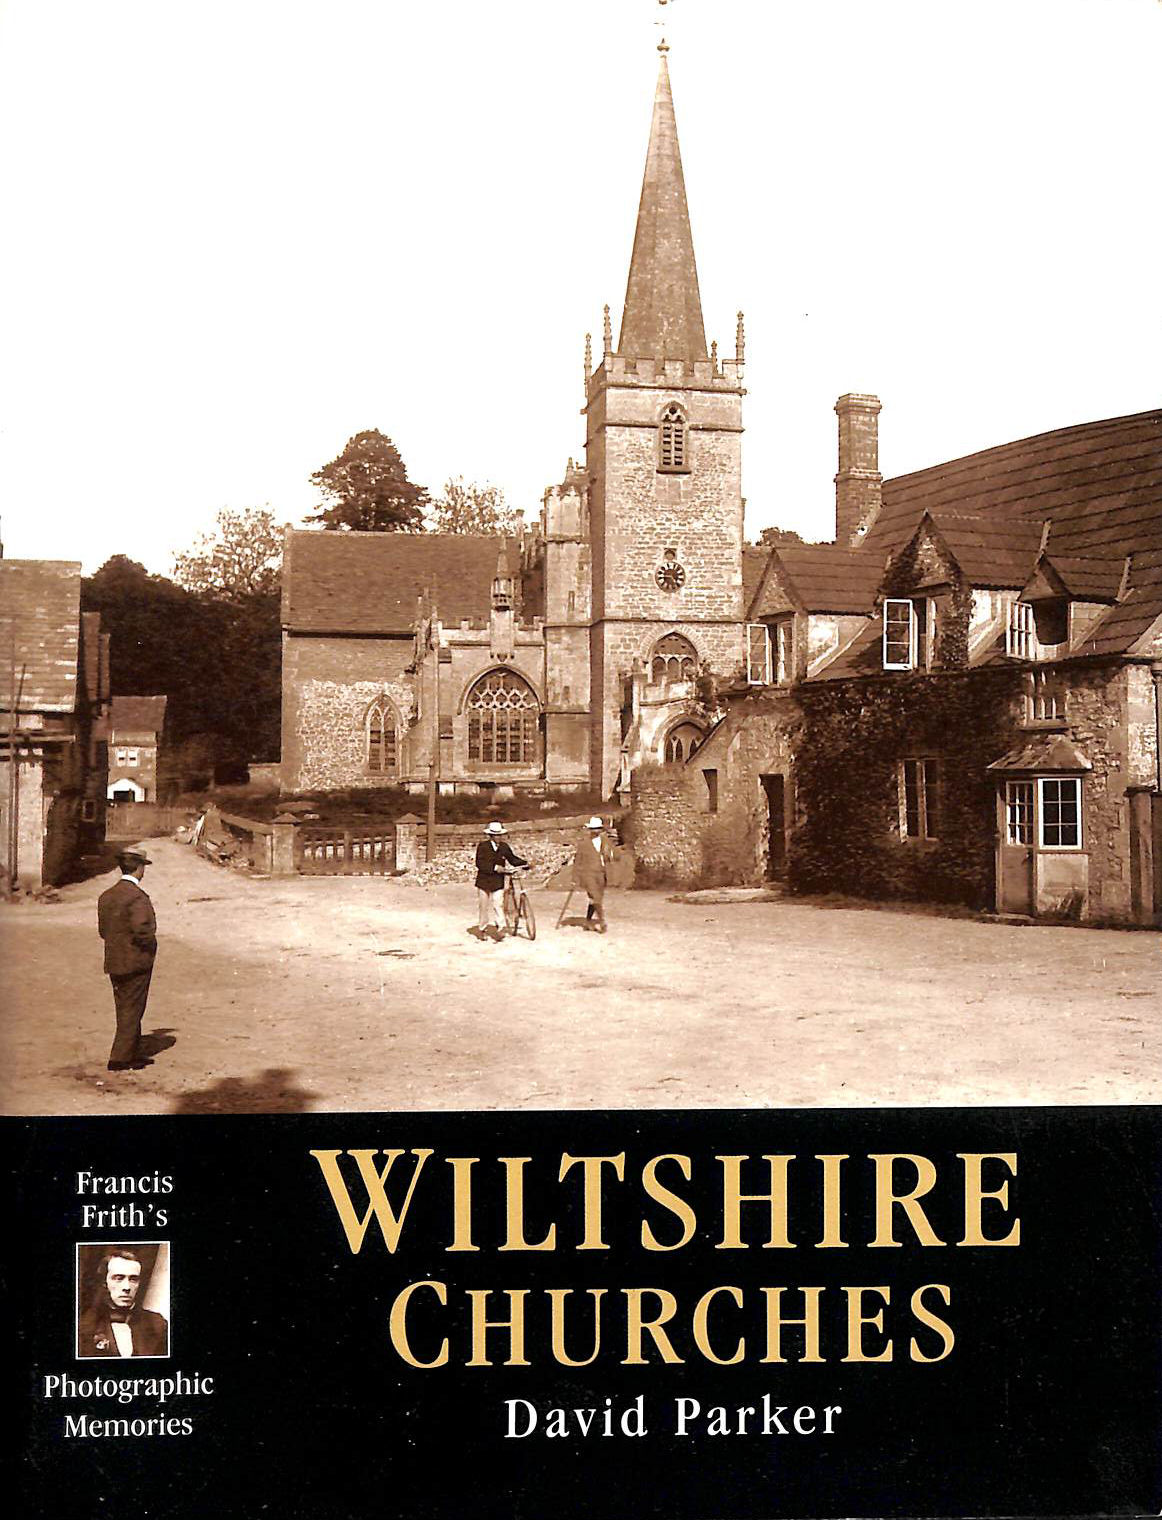 Image for Francis Frith's Wiltshire Churches (Photographic Memories)